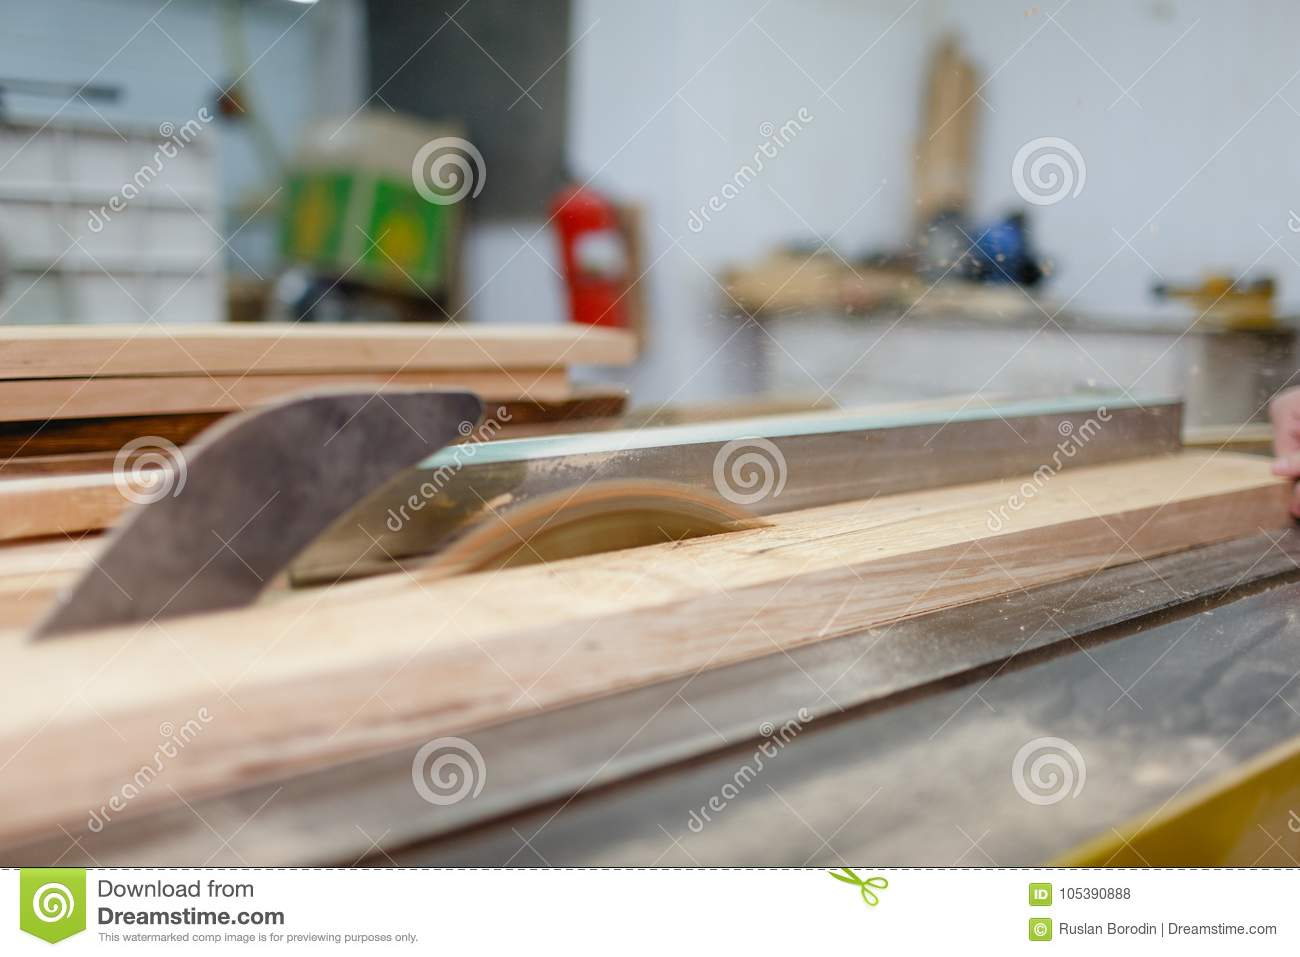 The machine saws the board on the machine and sawdust flying. View at an angle